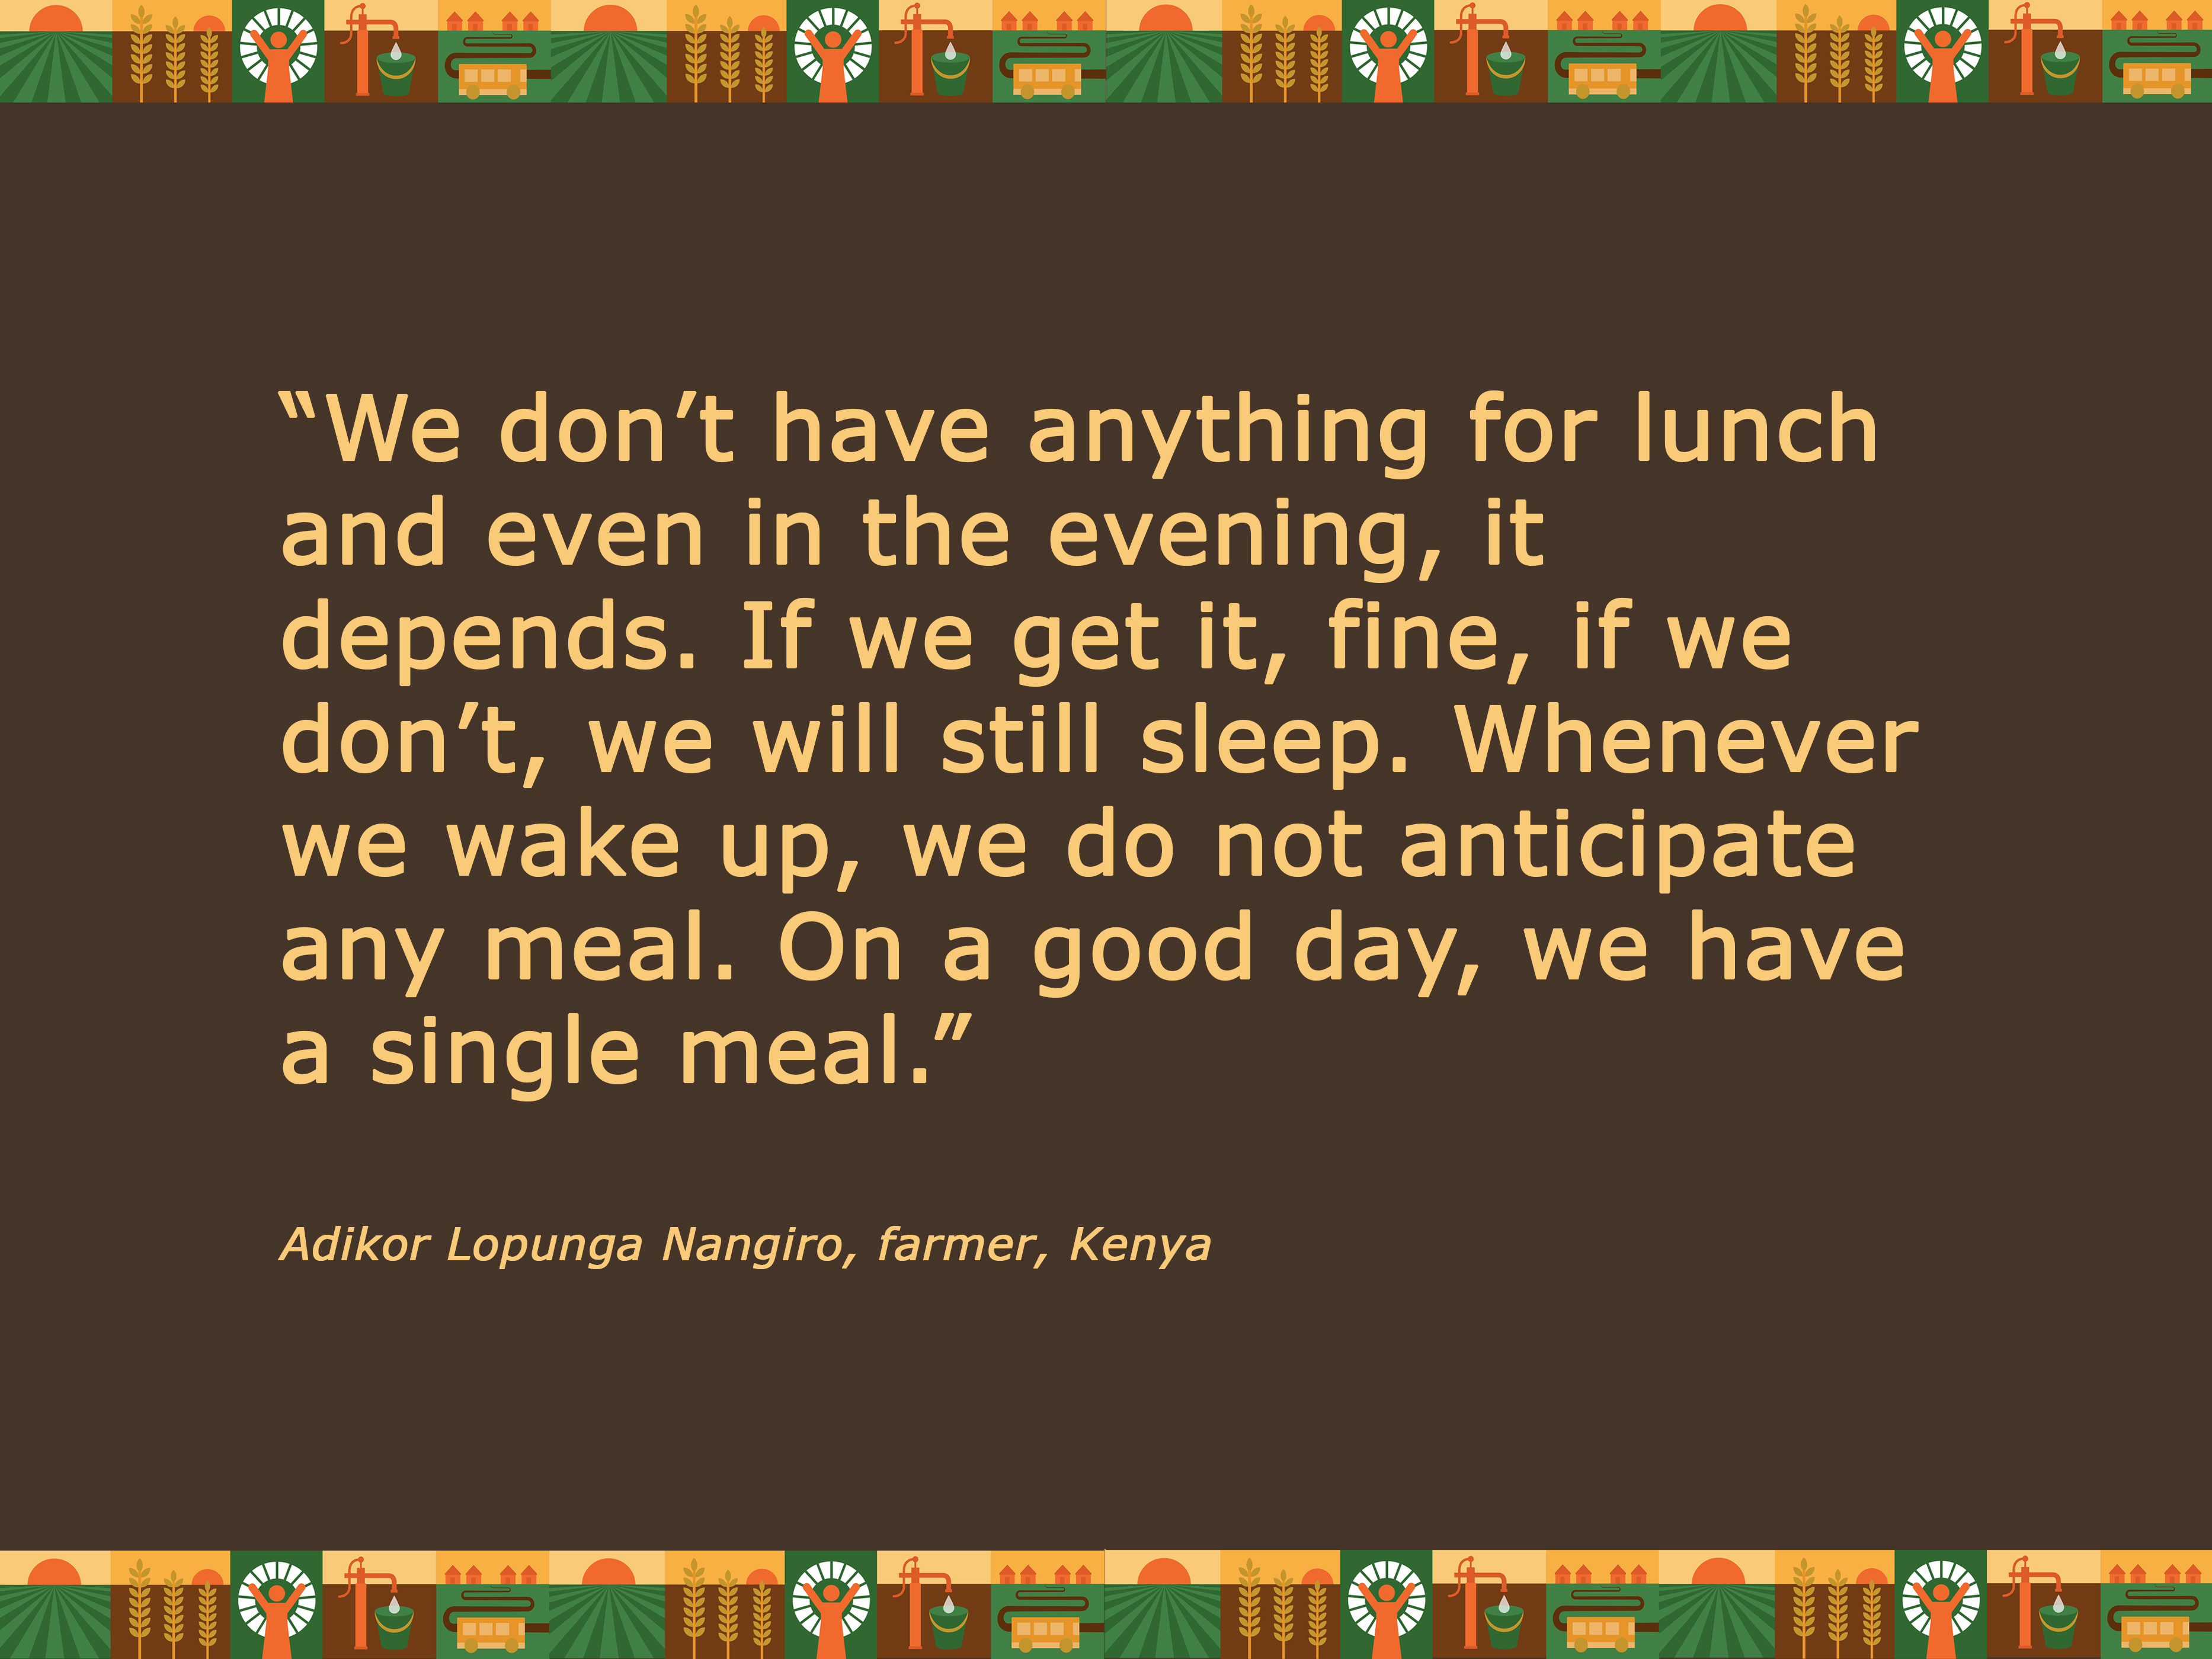 """Quote: """"We don't have anything for lunch and even in the evening, it depends. If we get it, fine, if we don't, we will still sleep. Whenever we wake up, we do not anticipate any meal. On a good day, we have a single meal."""" Adikor Lopunga Nangiro, Ken"""